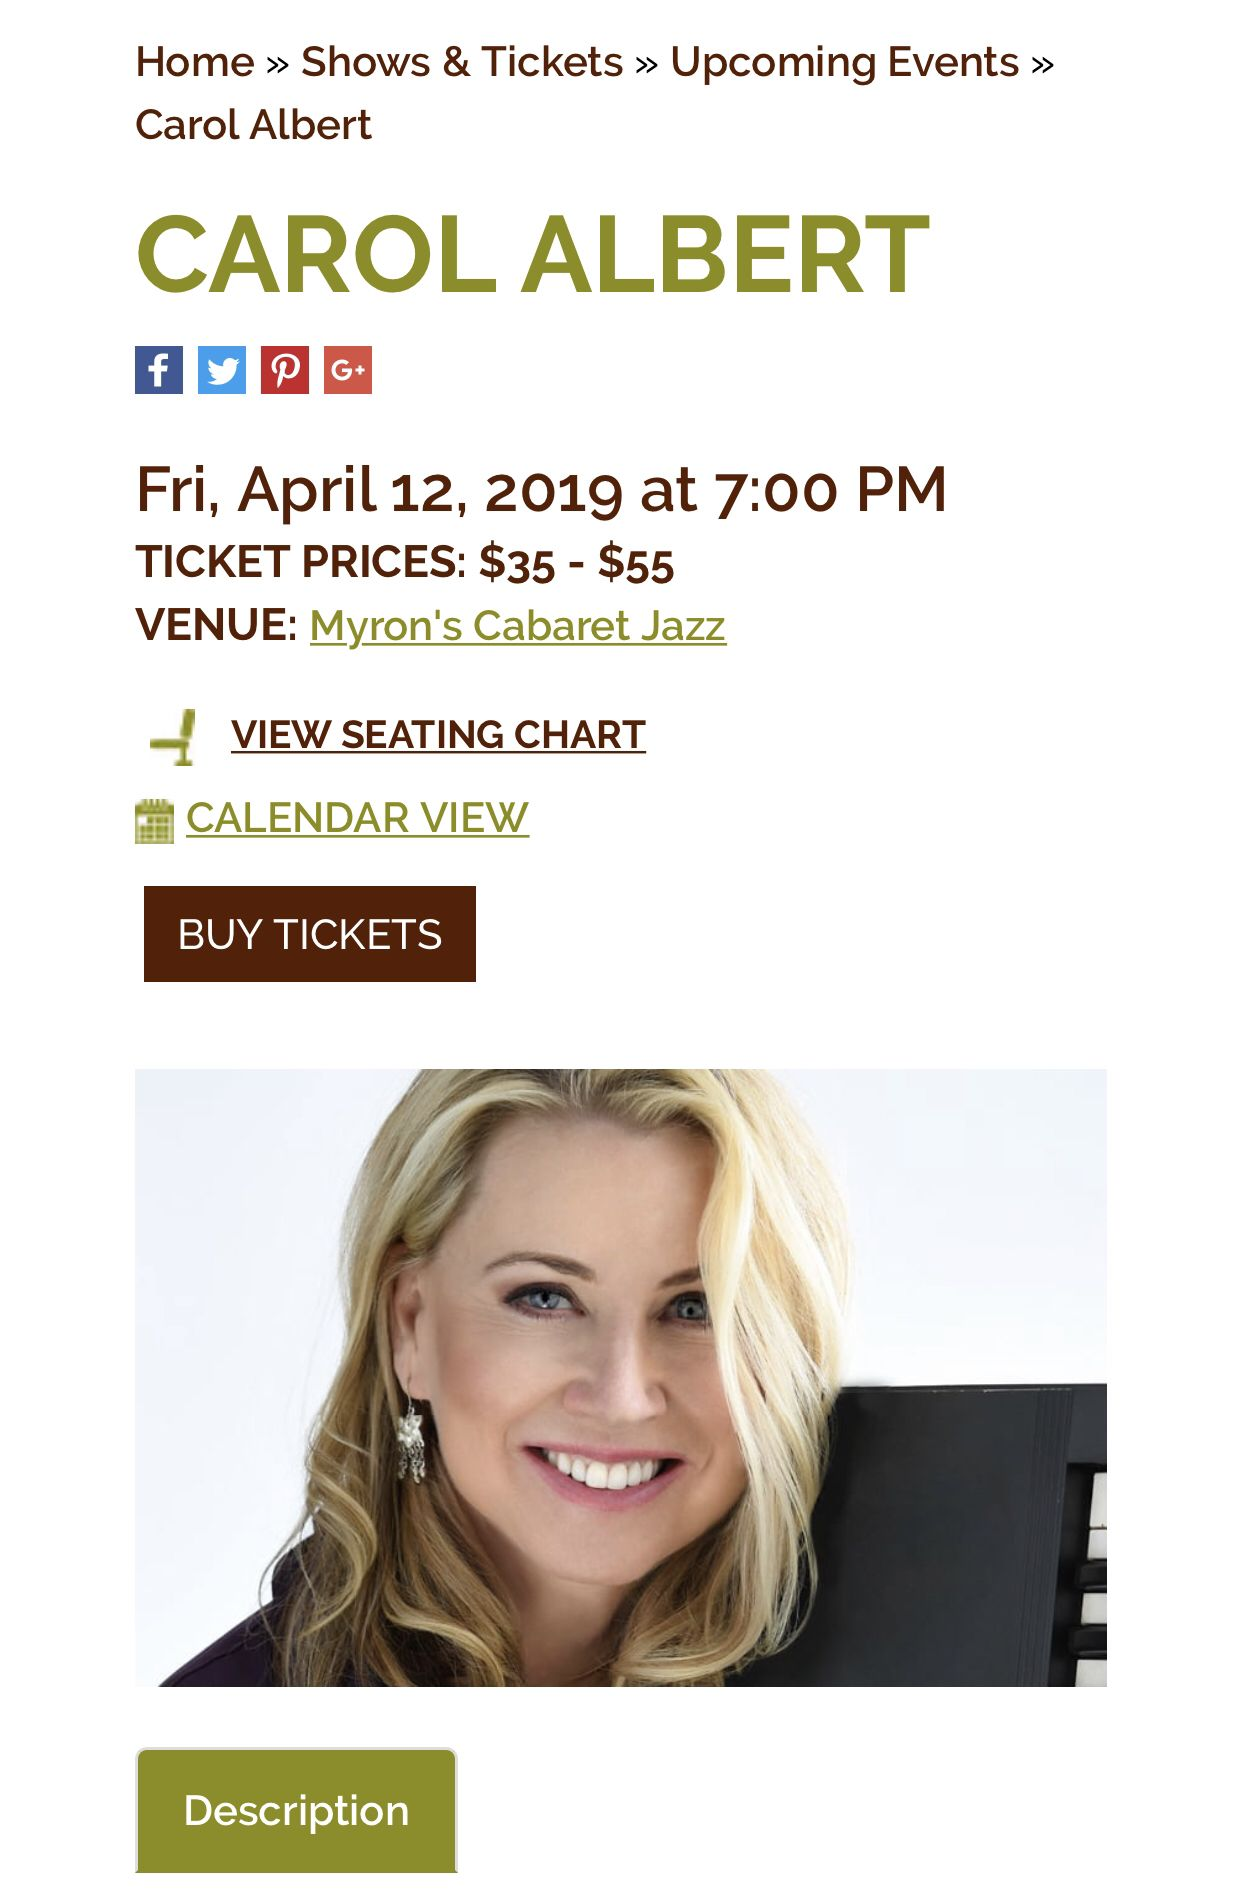 Book your tickets now for the Show on April 12 at Myron's